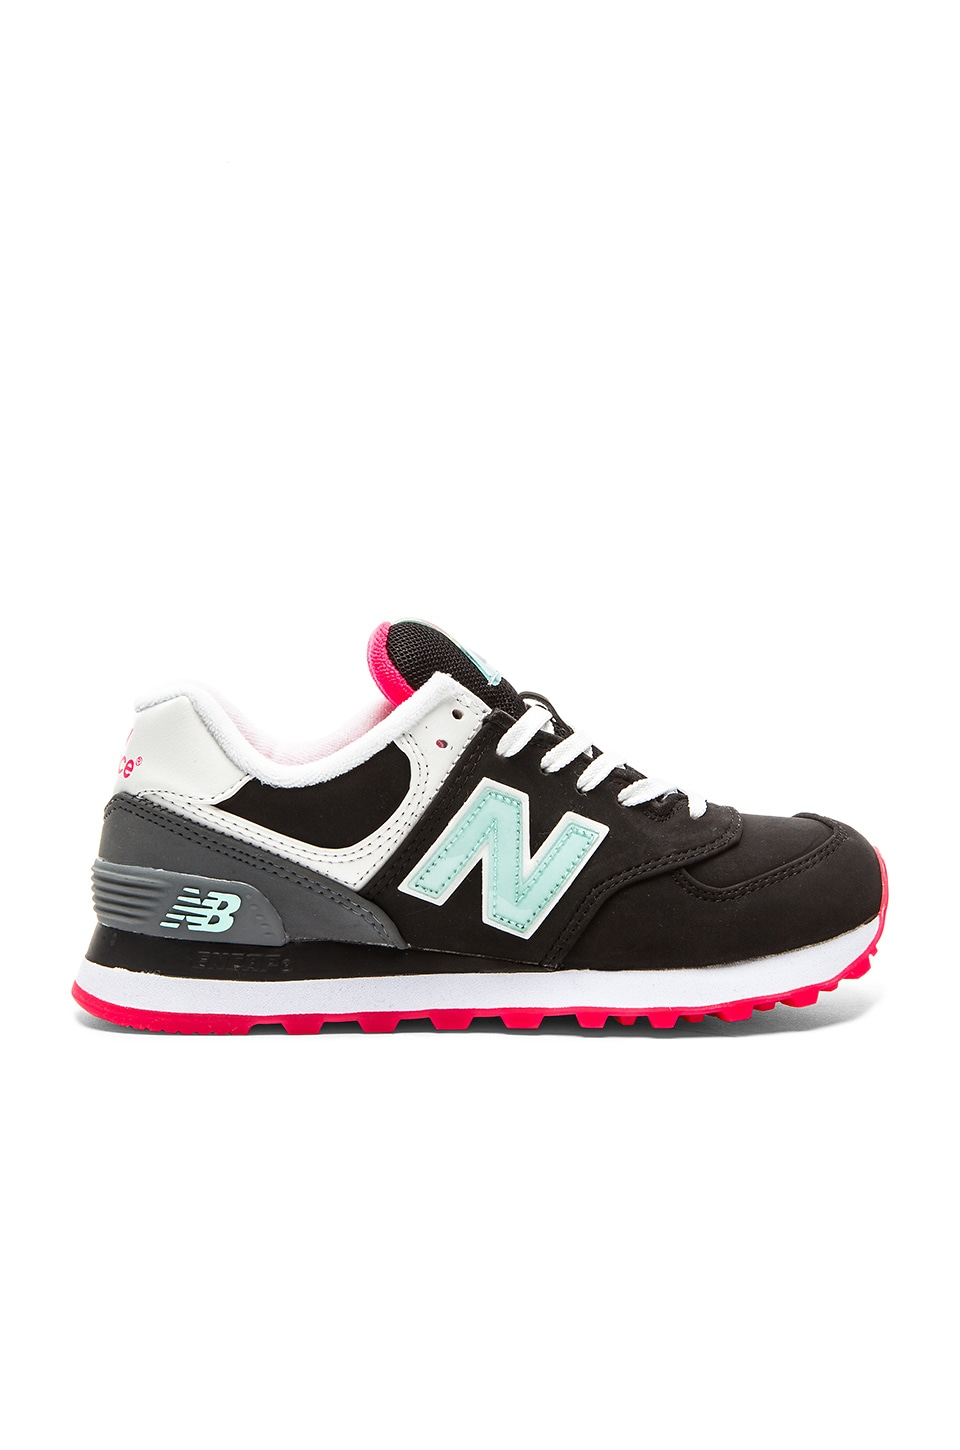 New Balance 574 Glacial Collection Sneaker in Black & Grey